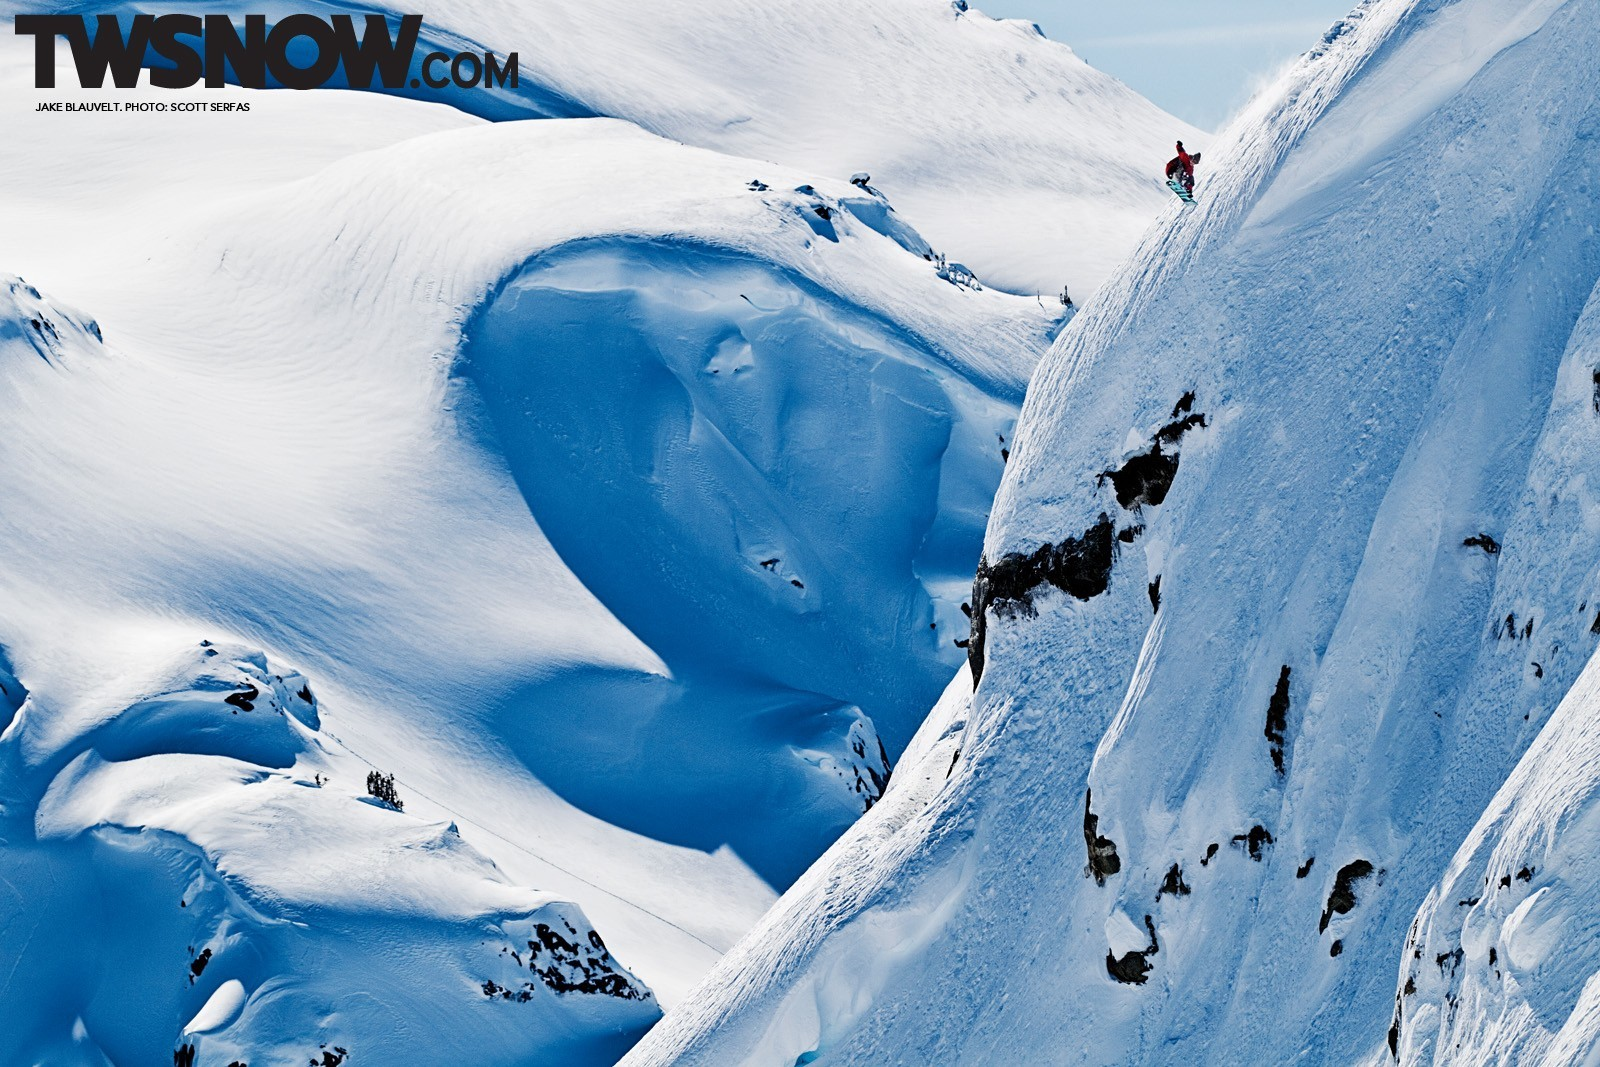 snow winter Mountains Sports Snowboarding HD Wallpaper